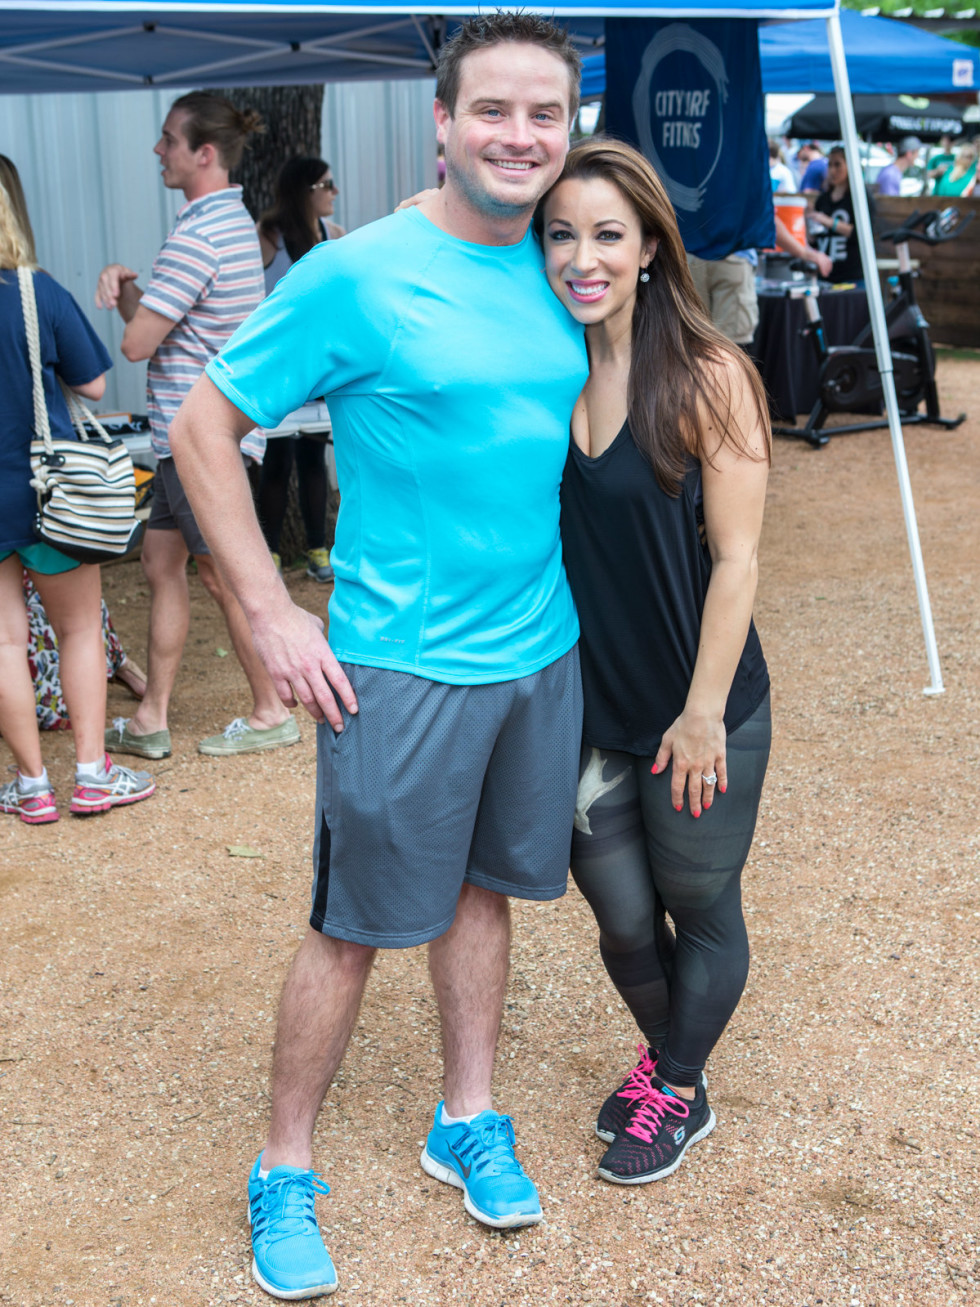 Heath Oakes, emcee Jenny Anchondo, weekend anchor of Fox4-TV's Good Day Dallas